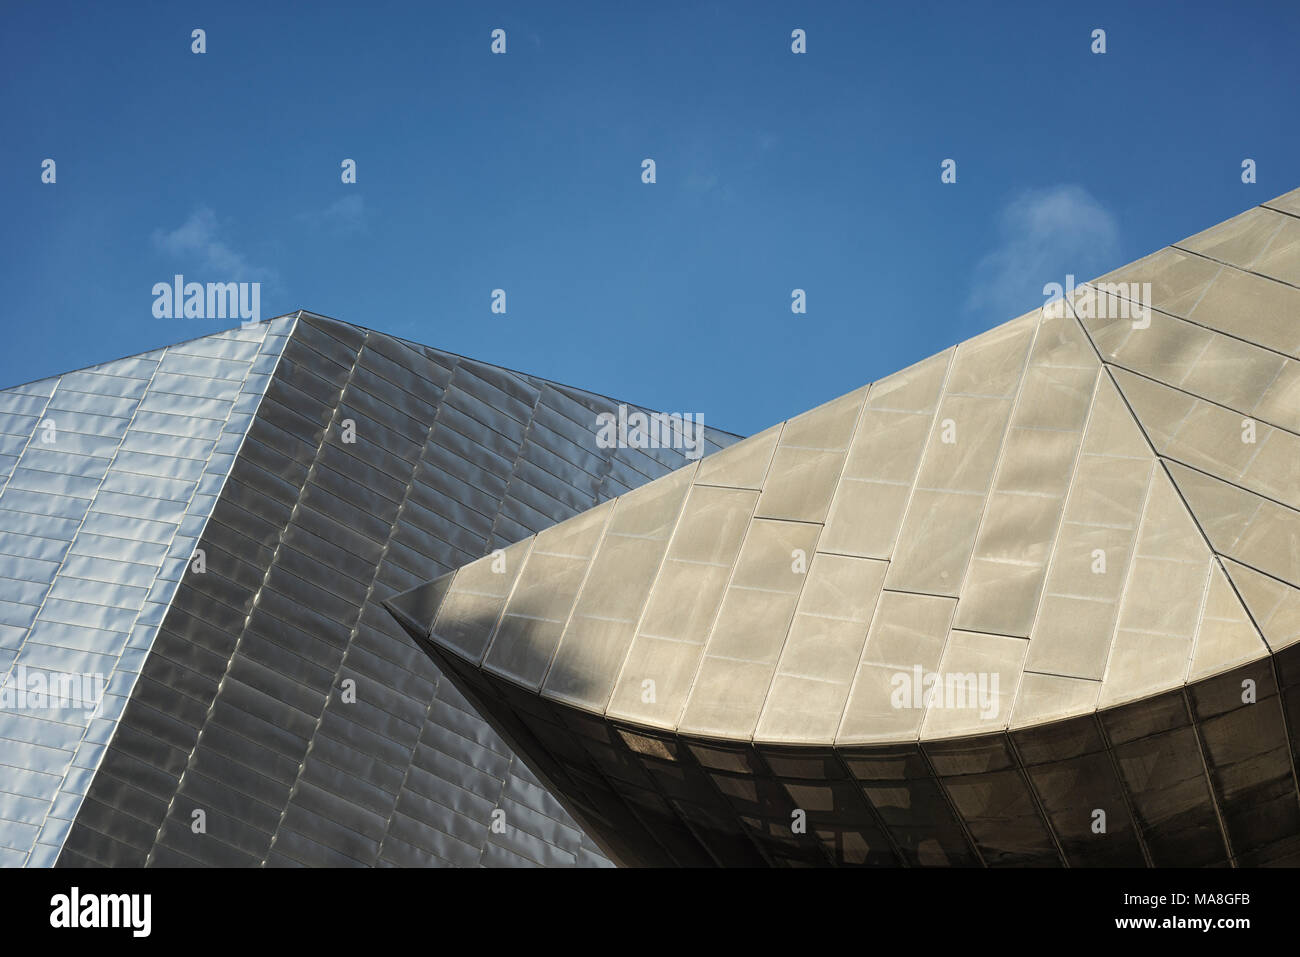 Architectural detail of the Lowry Theatre at Salford Quays, Manchester, England, UK - Stock Image